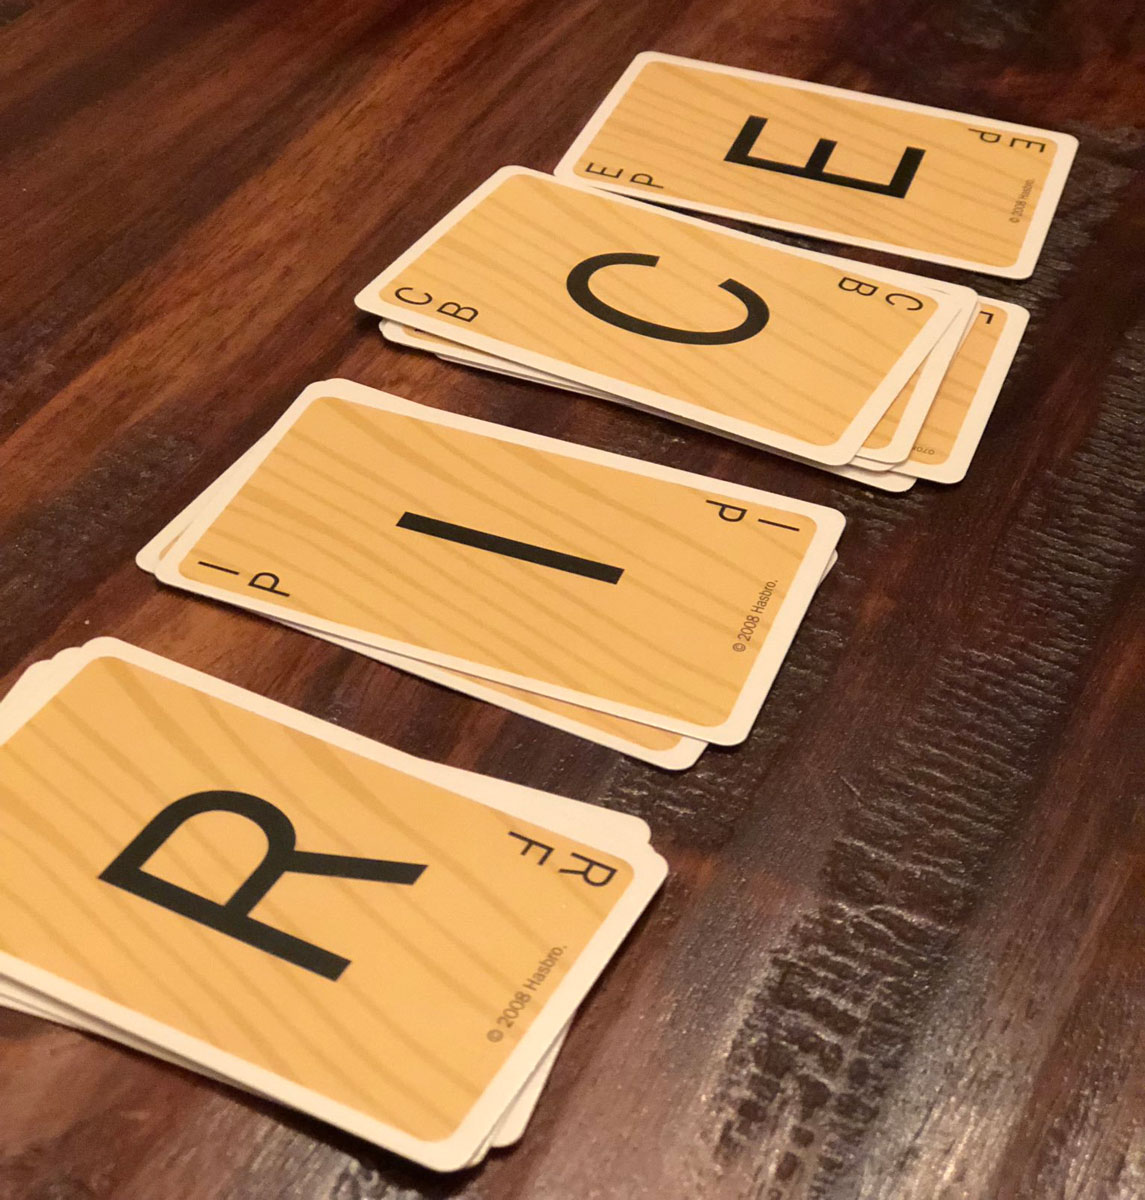 Game cards spell out R-I-C-E